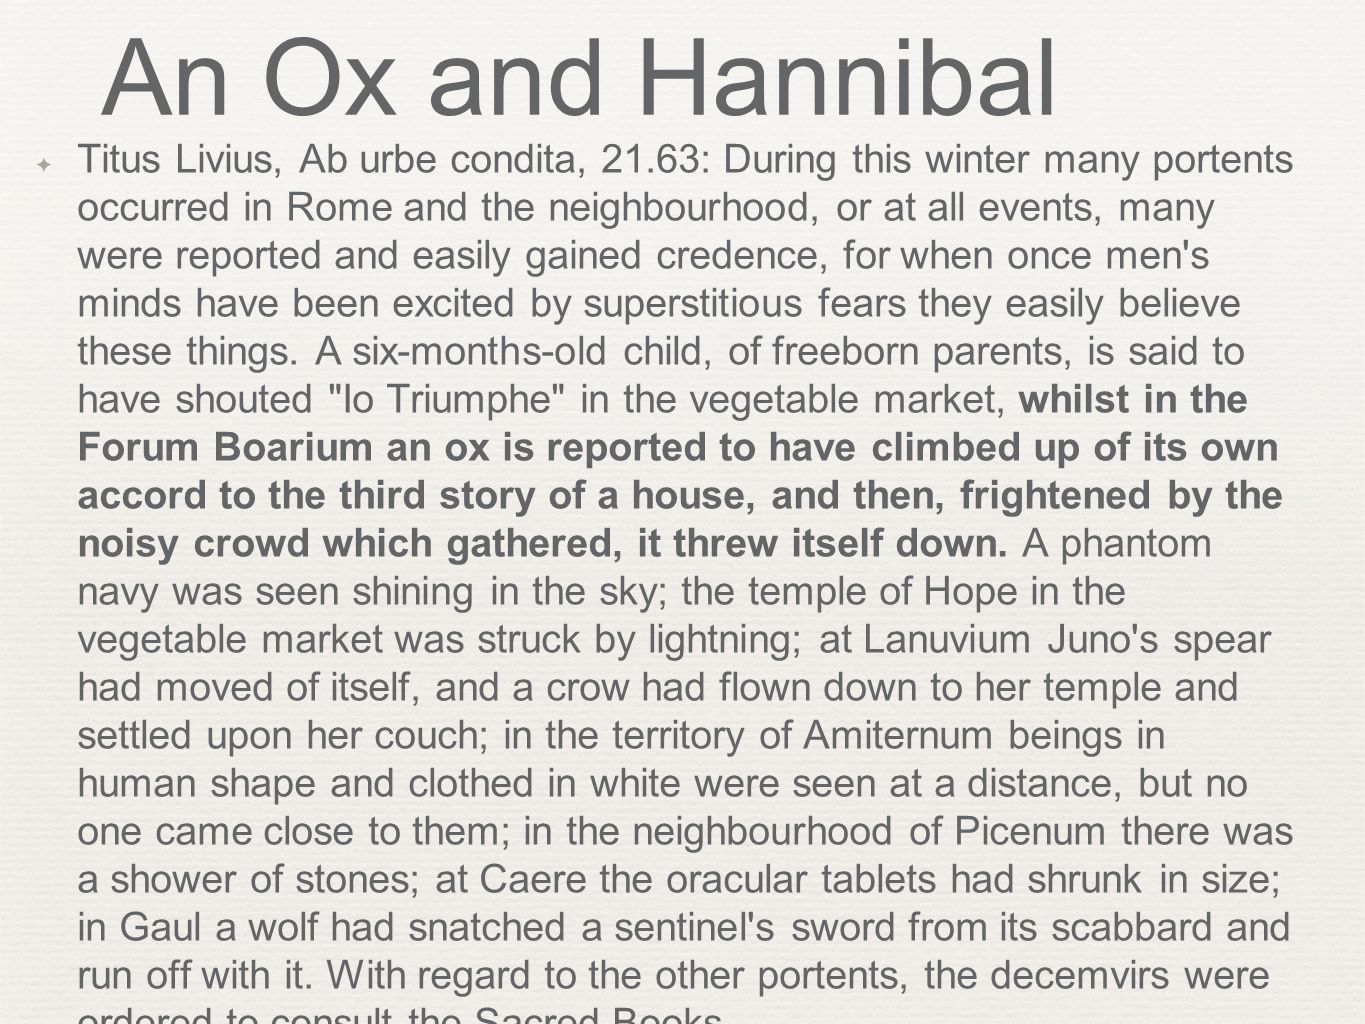 An Ox and Hannibal ✦ Titus Livius, Ab urbe condita, 21.63: During this winter many portents occurred in Rome and the neighbourhood, or at all events, many were reported and easily gained credence, for when once men s minds have been excited by superstitious fears they easily believe these things.